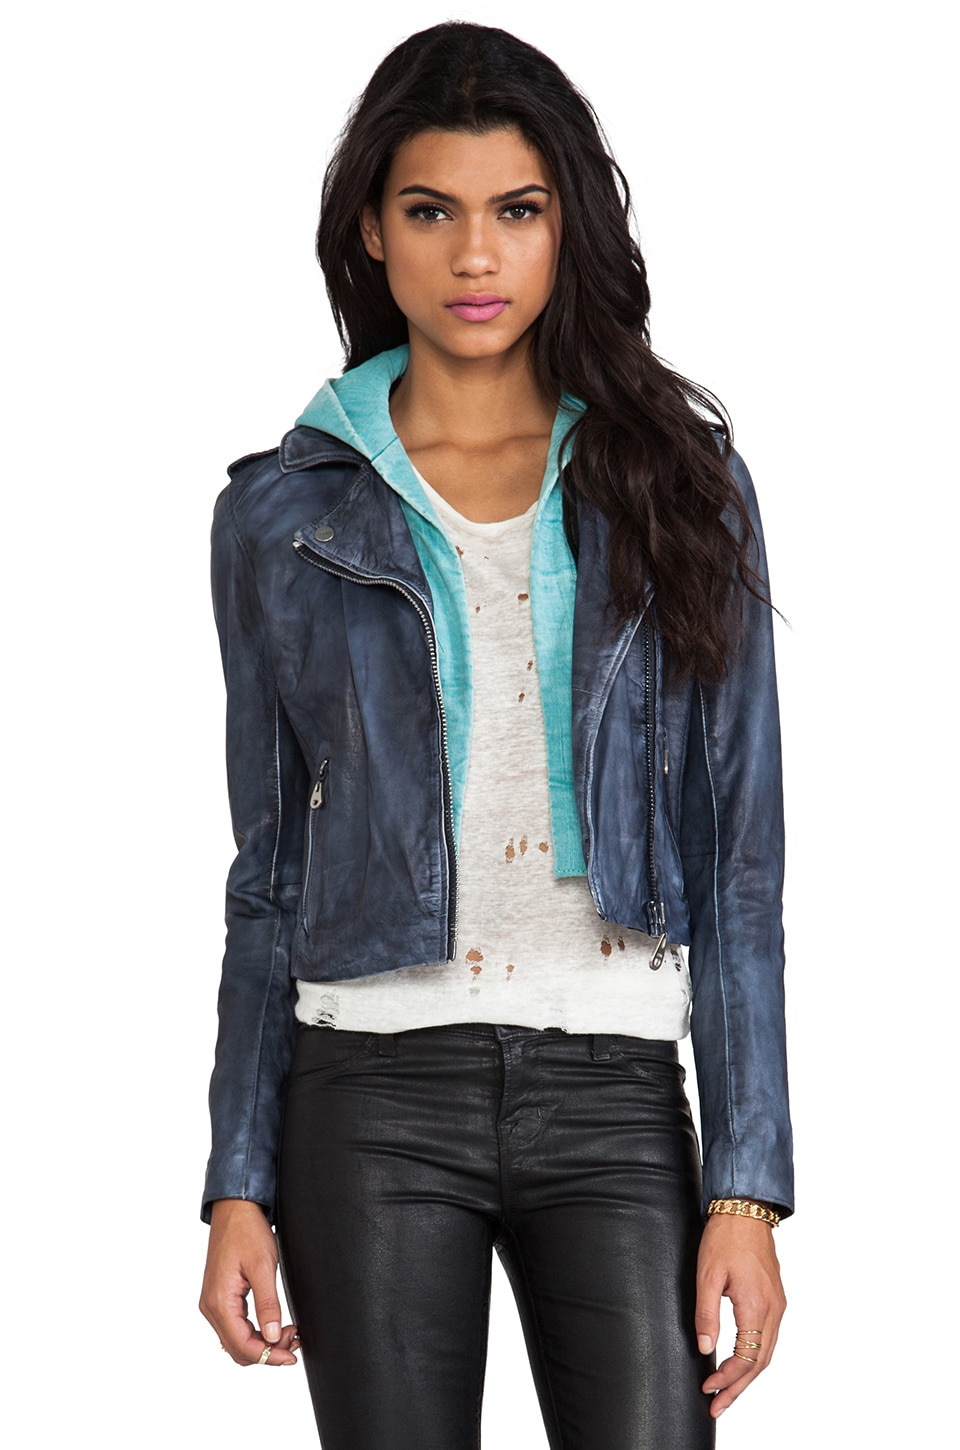 DOMA Washed Lamb Leather Jacket with Detachable Hood in Grey Cloud & Green Wasted